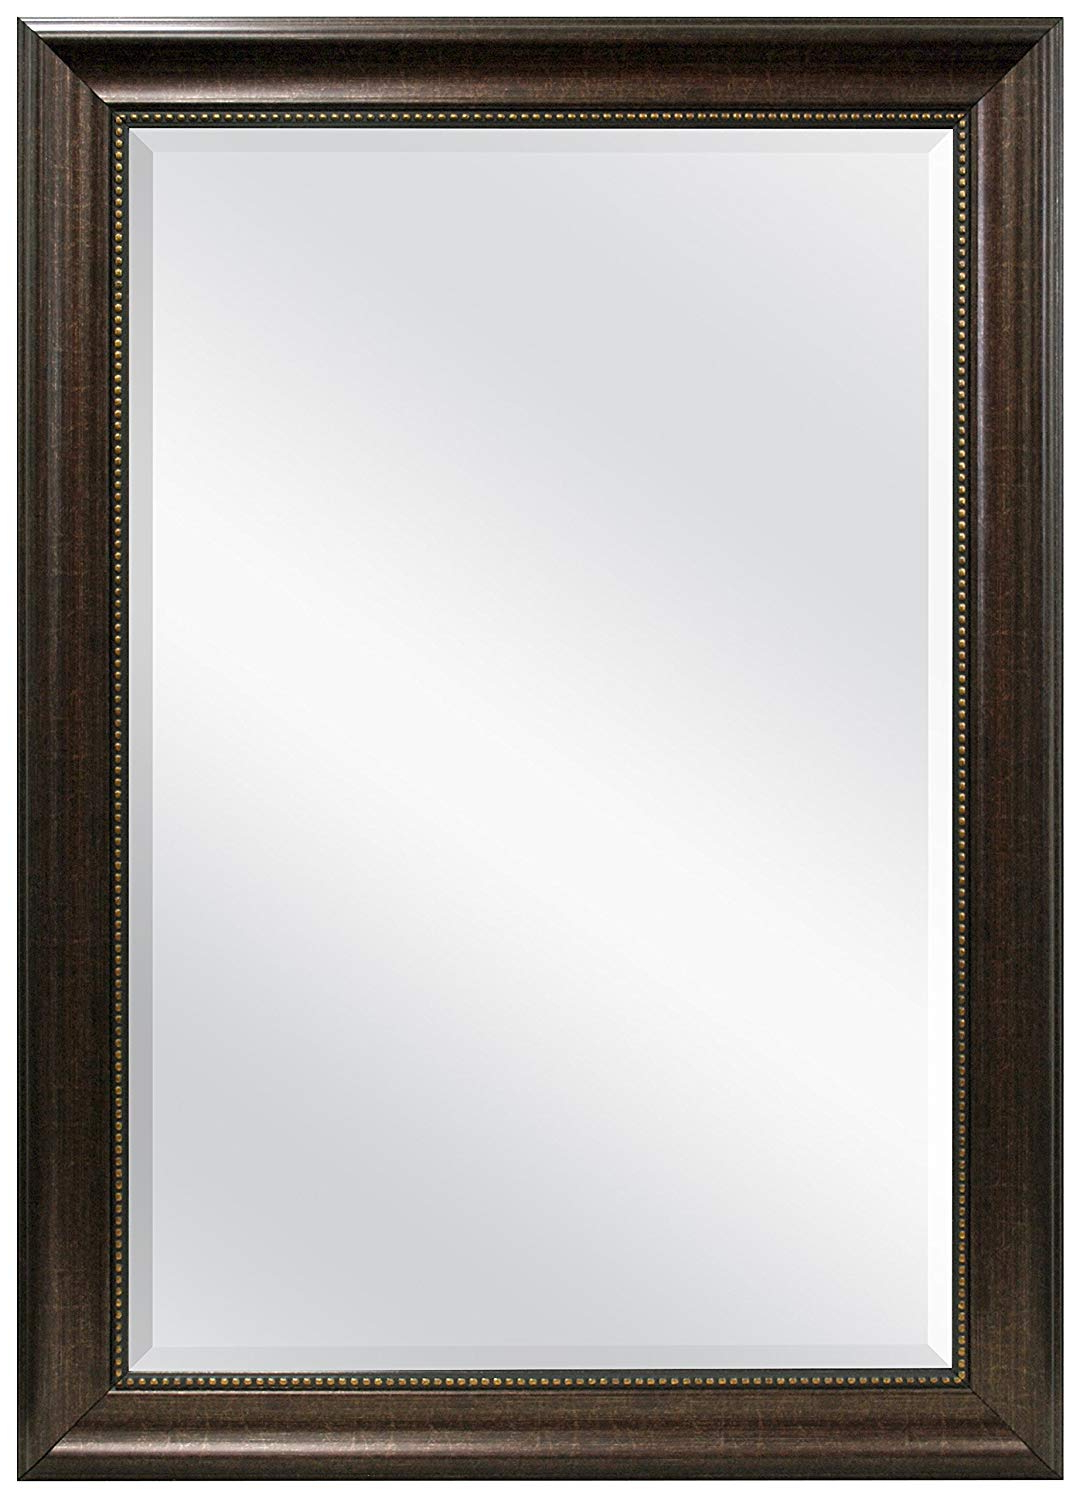 Most Current Mcs 24x36 Inch Beaded Rectangular Wall Mirror, 30x42 Inch Overall Size, Bronze (20677) For Beaded Wall Mirrors (View 5 of 20)